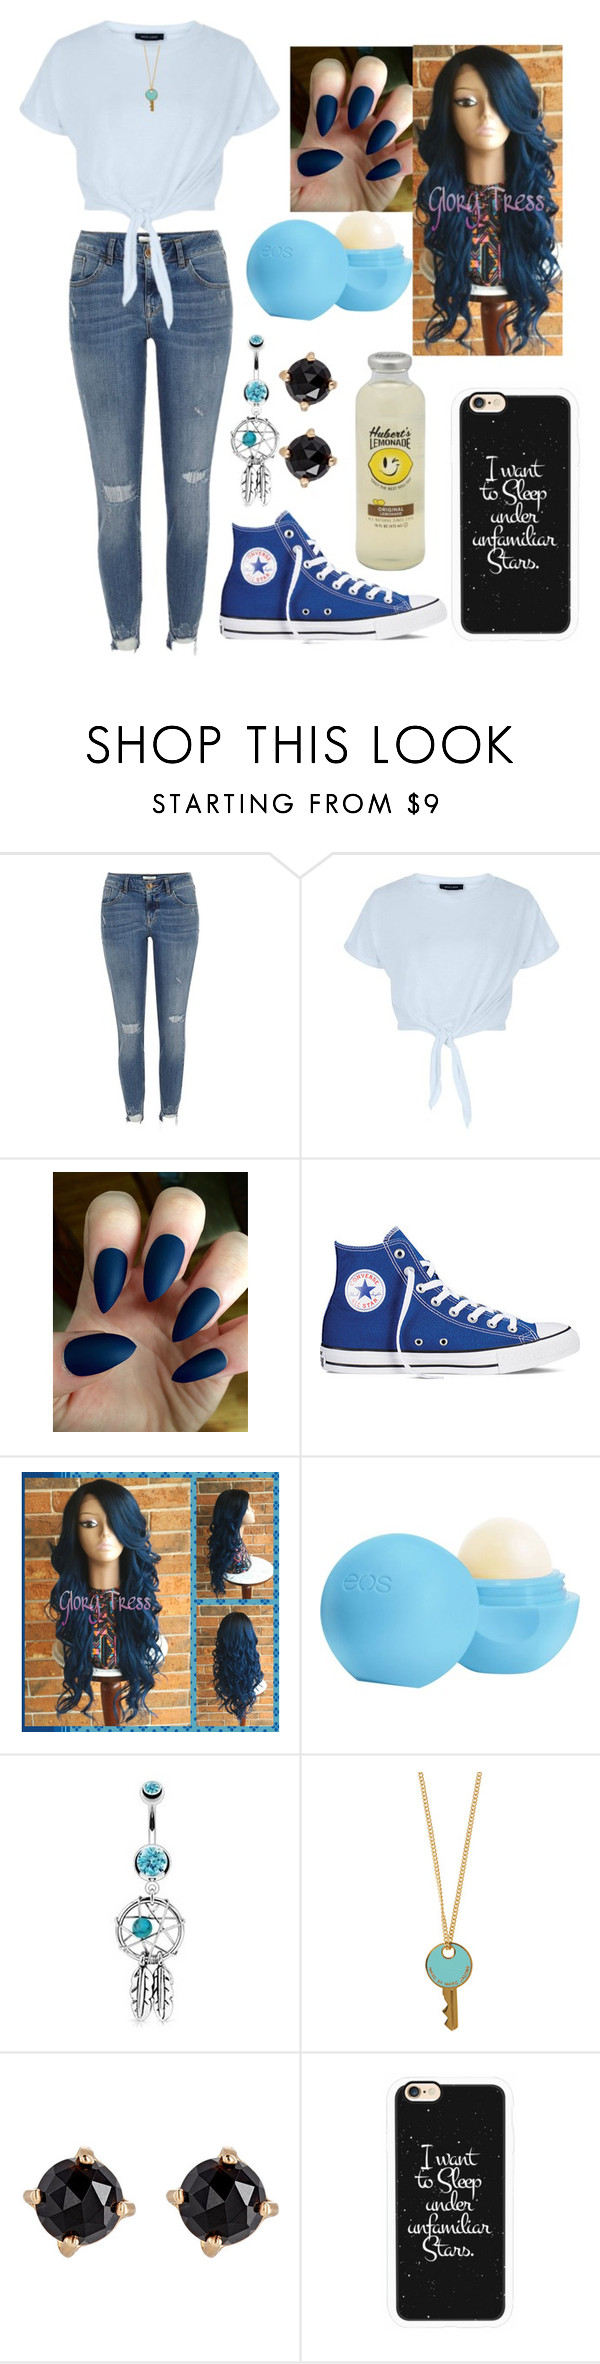 """just a small town girl"" by life-is-dead ❤ liked on Polyvore featuring River Island, New Look, Converse, Eos, Bling Jewelry, Marc by Marc Jacobs, Irene Neuwirth and Casetify"